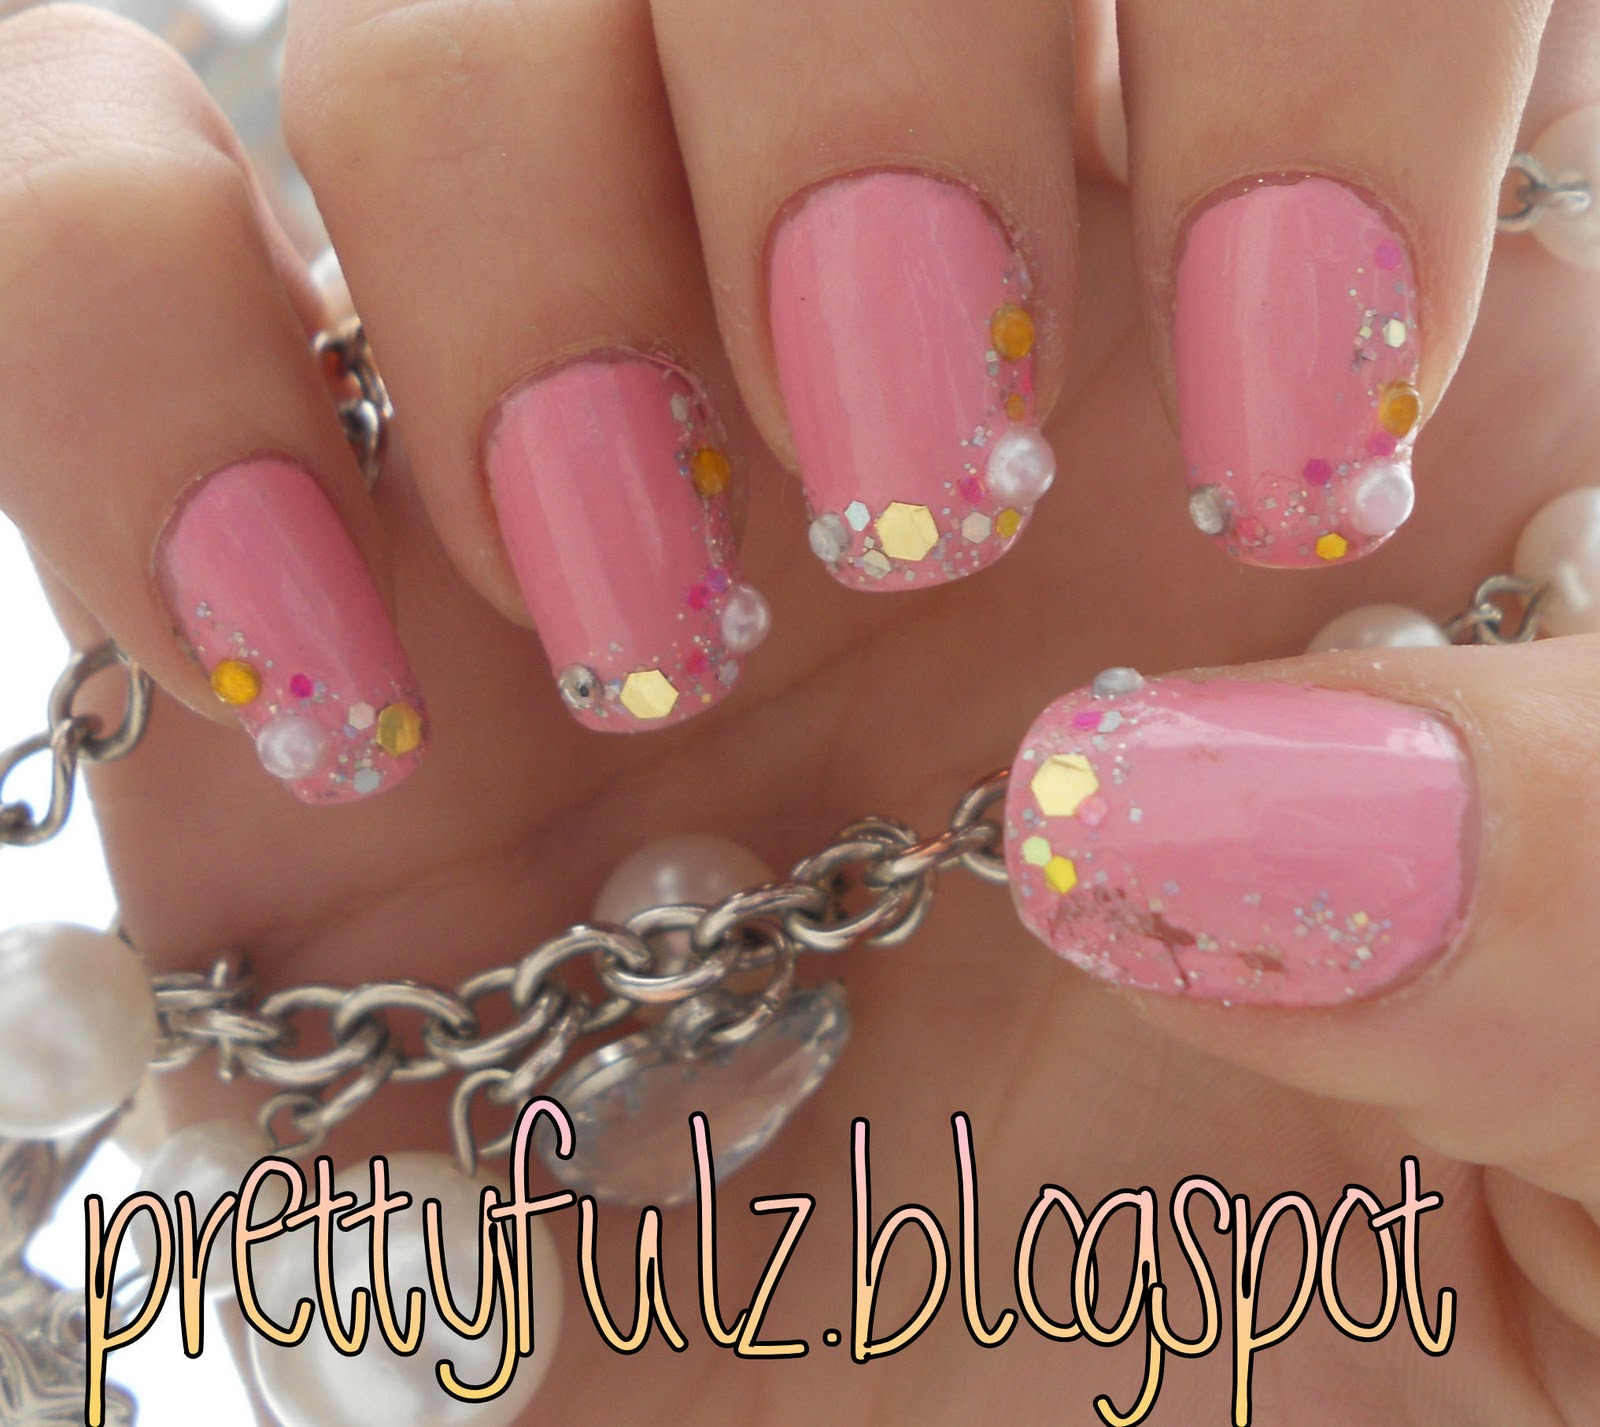 PINK DECO NAIL ART DESIGN